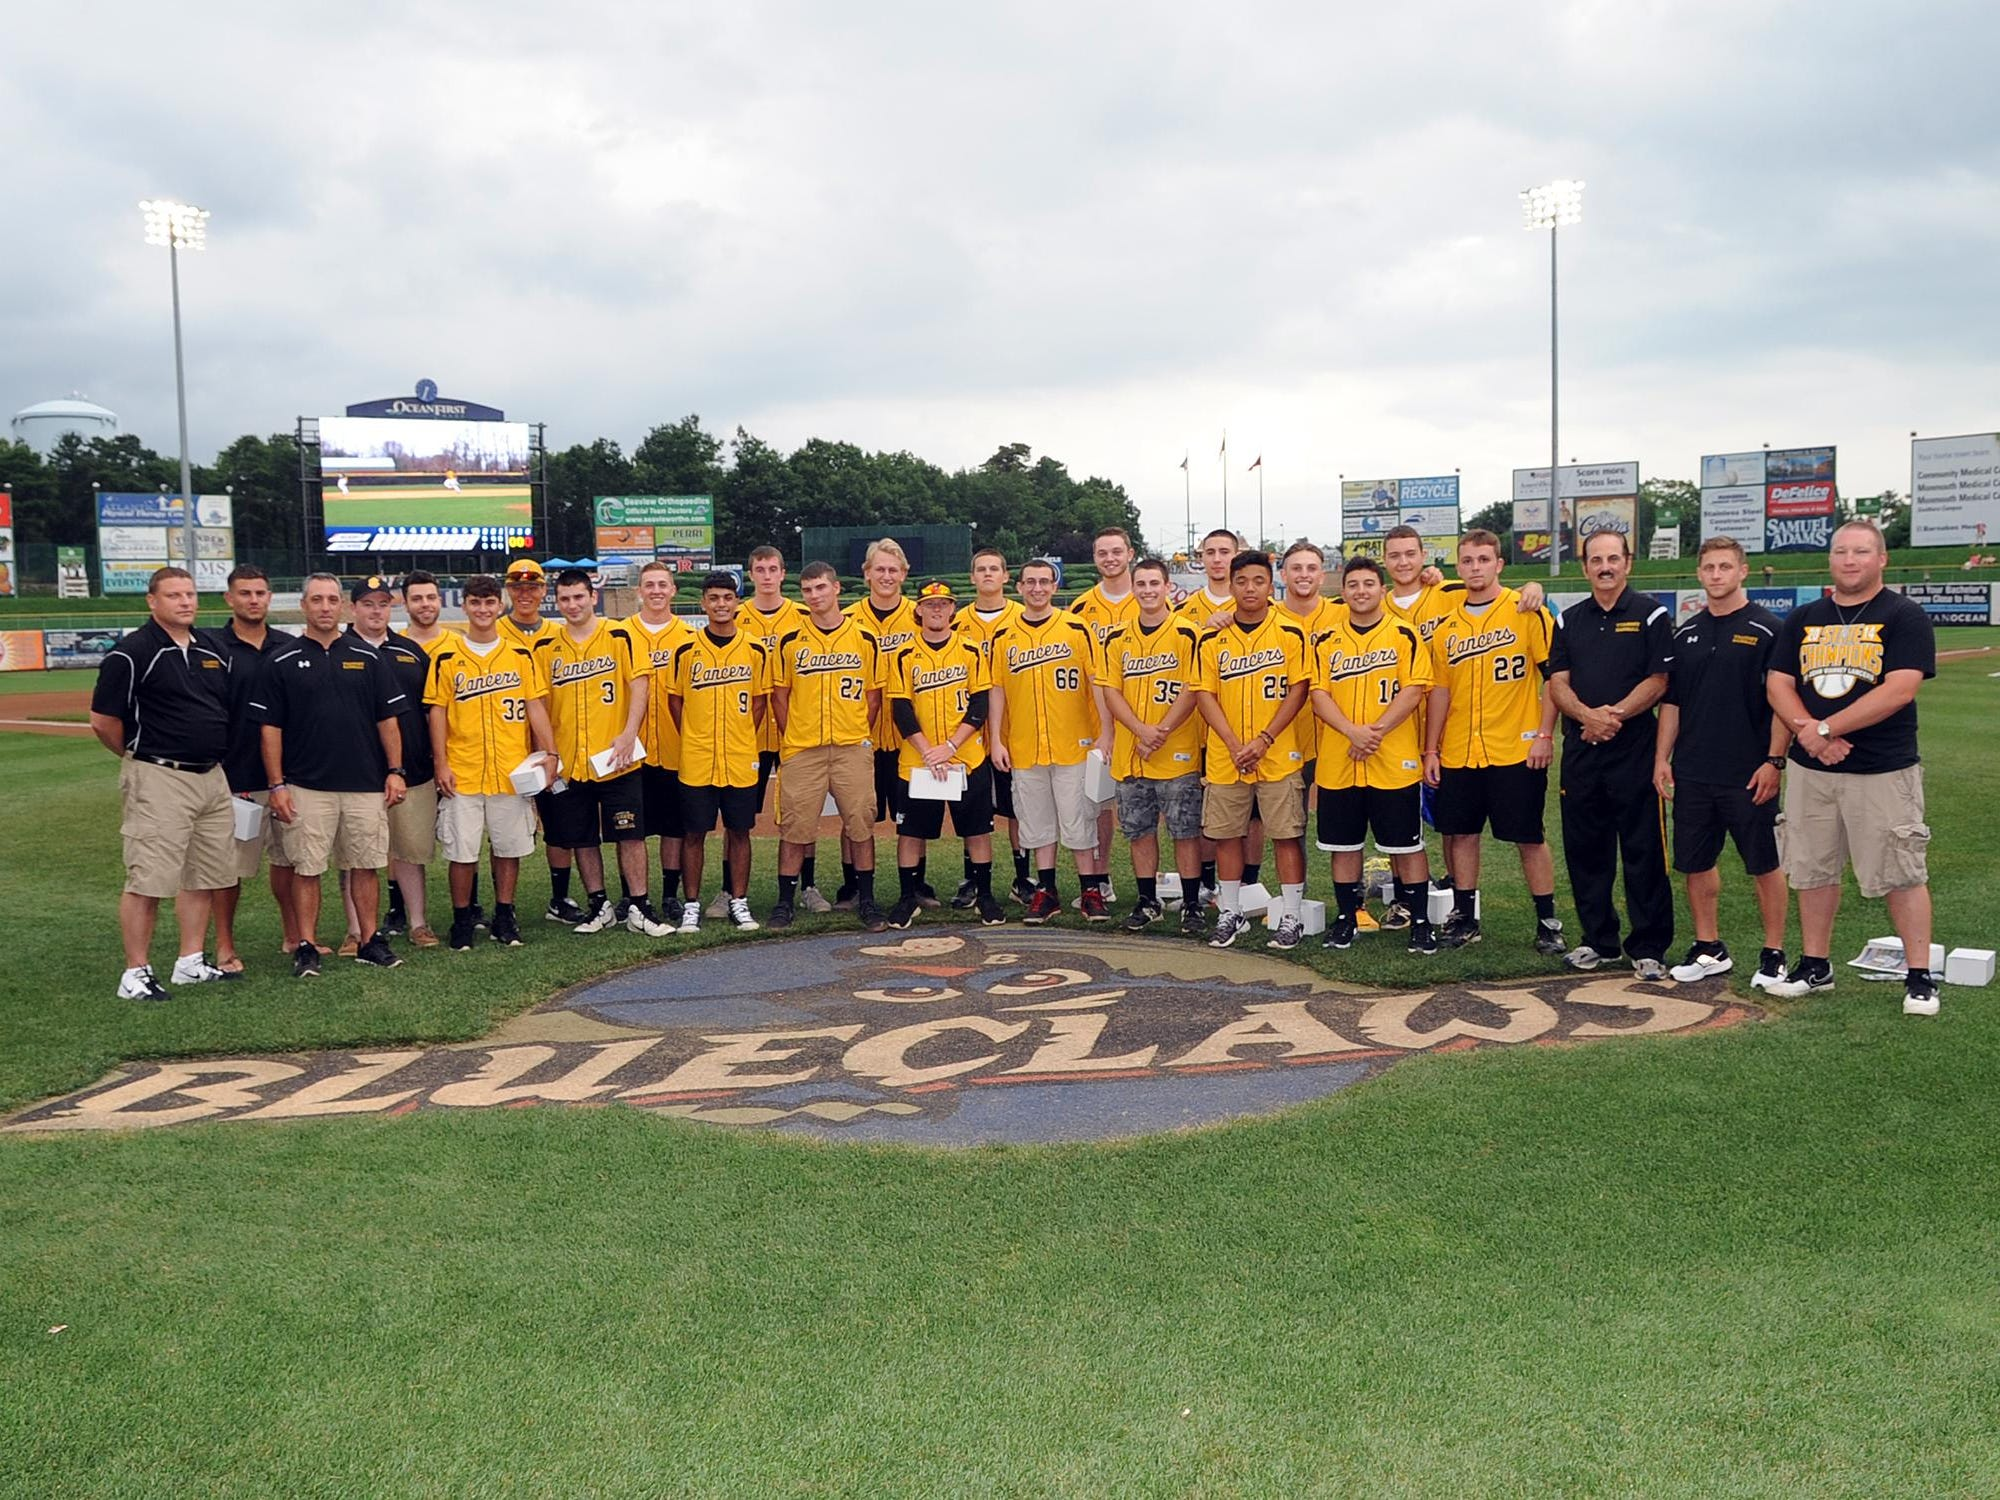 St. John Vianney's 2014 state championship baseball team was inducted into the BlueClaws Ring of Honor on Wednesday in Lakewood.